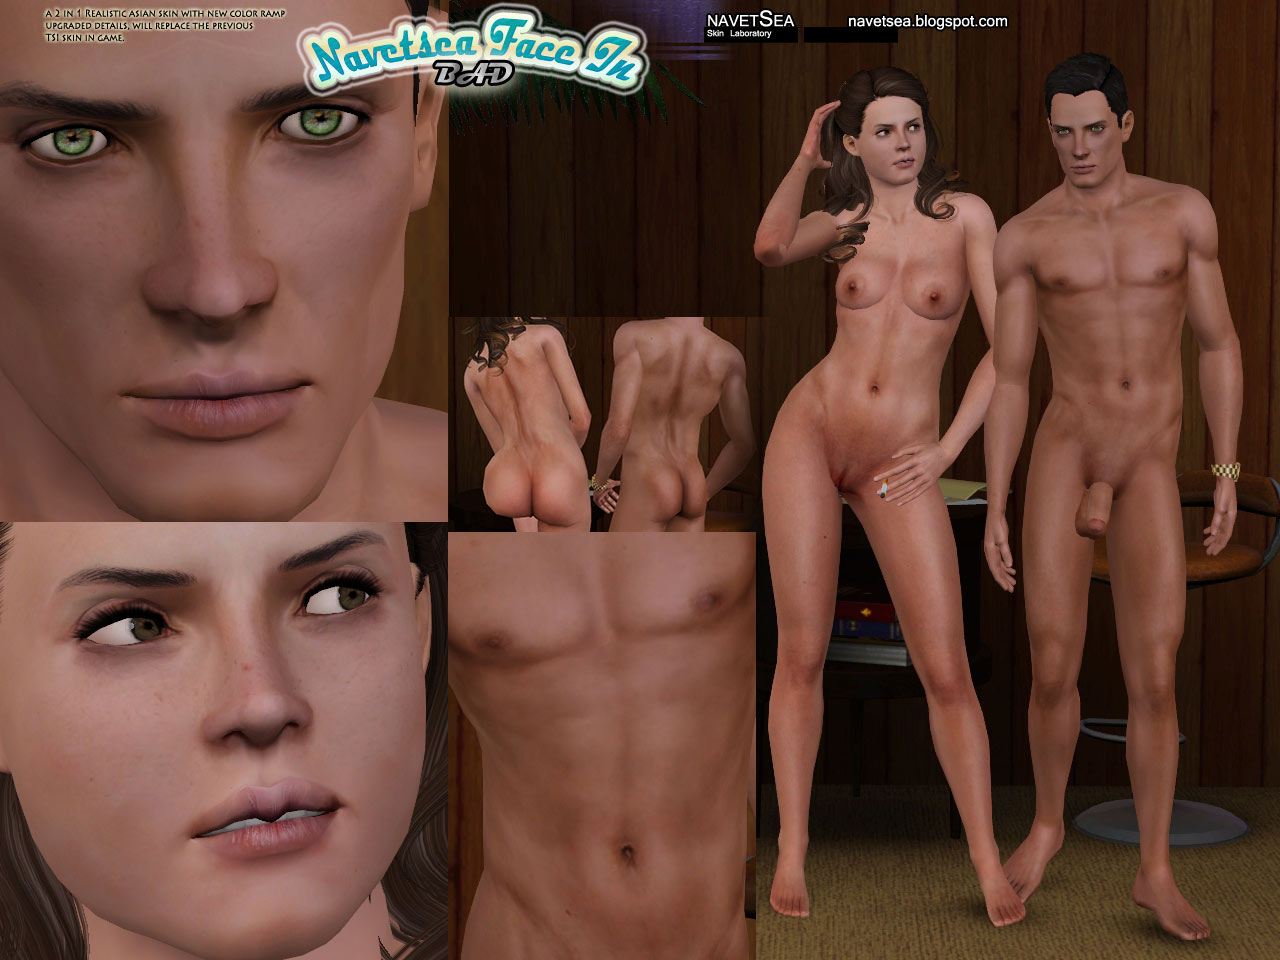 Sims 2 girl nude patch sexy pic